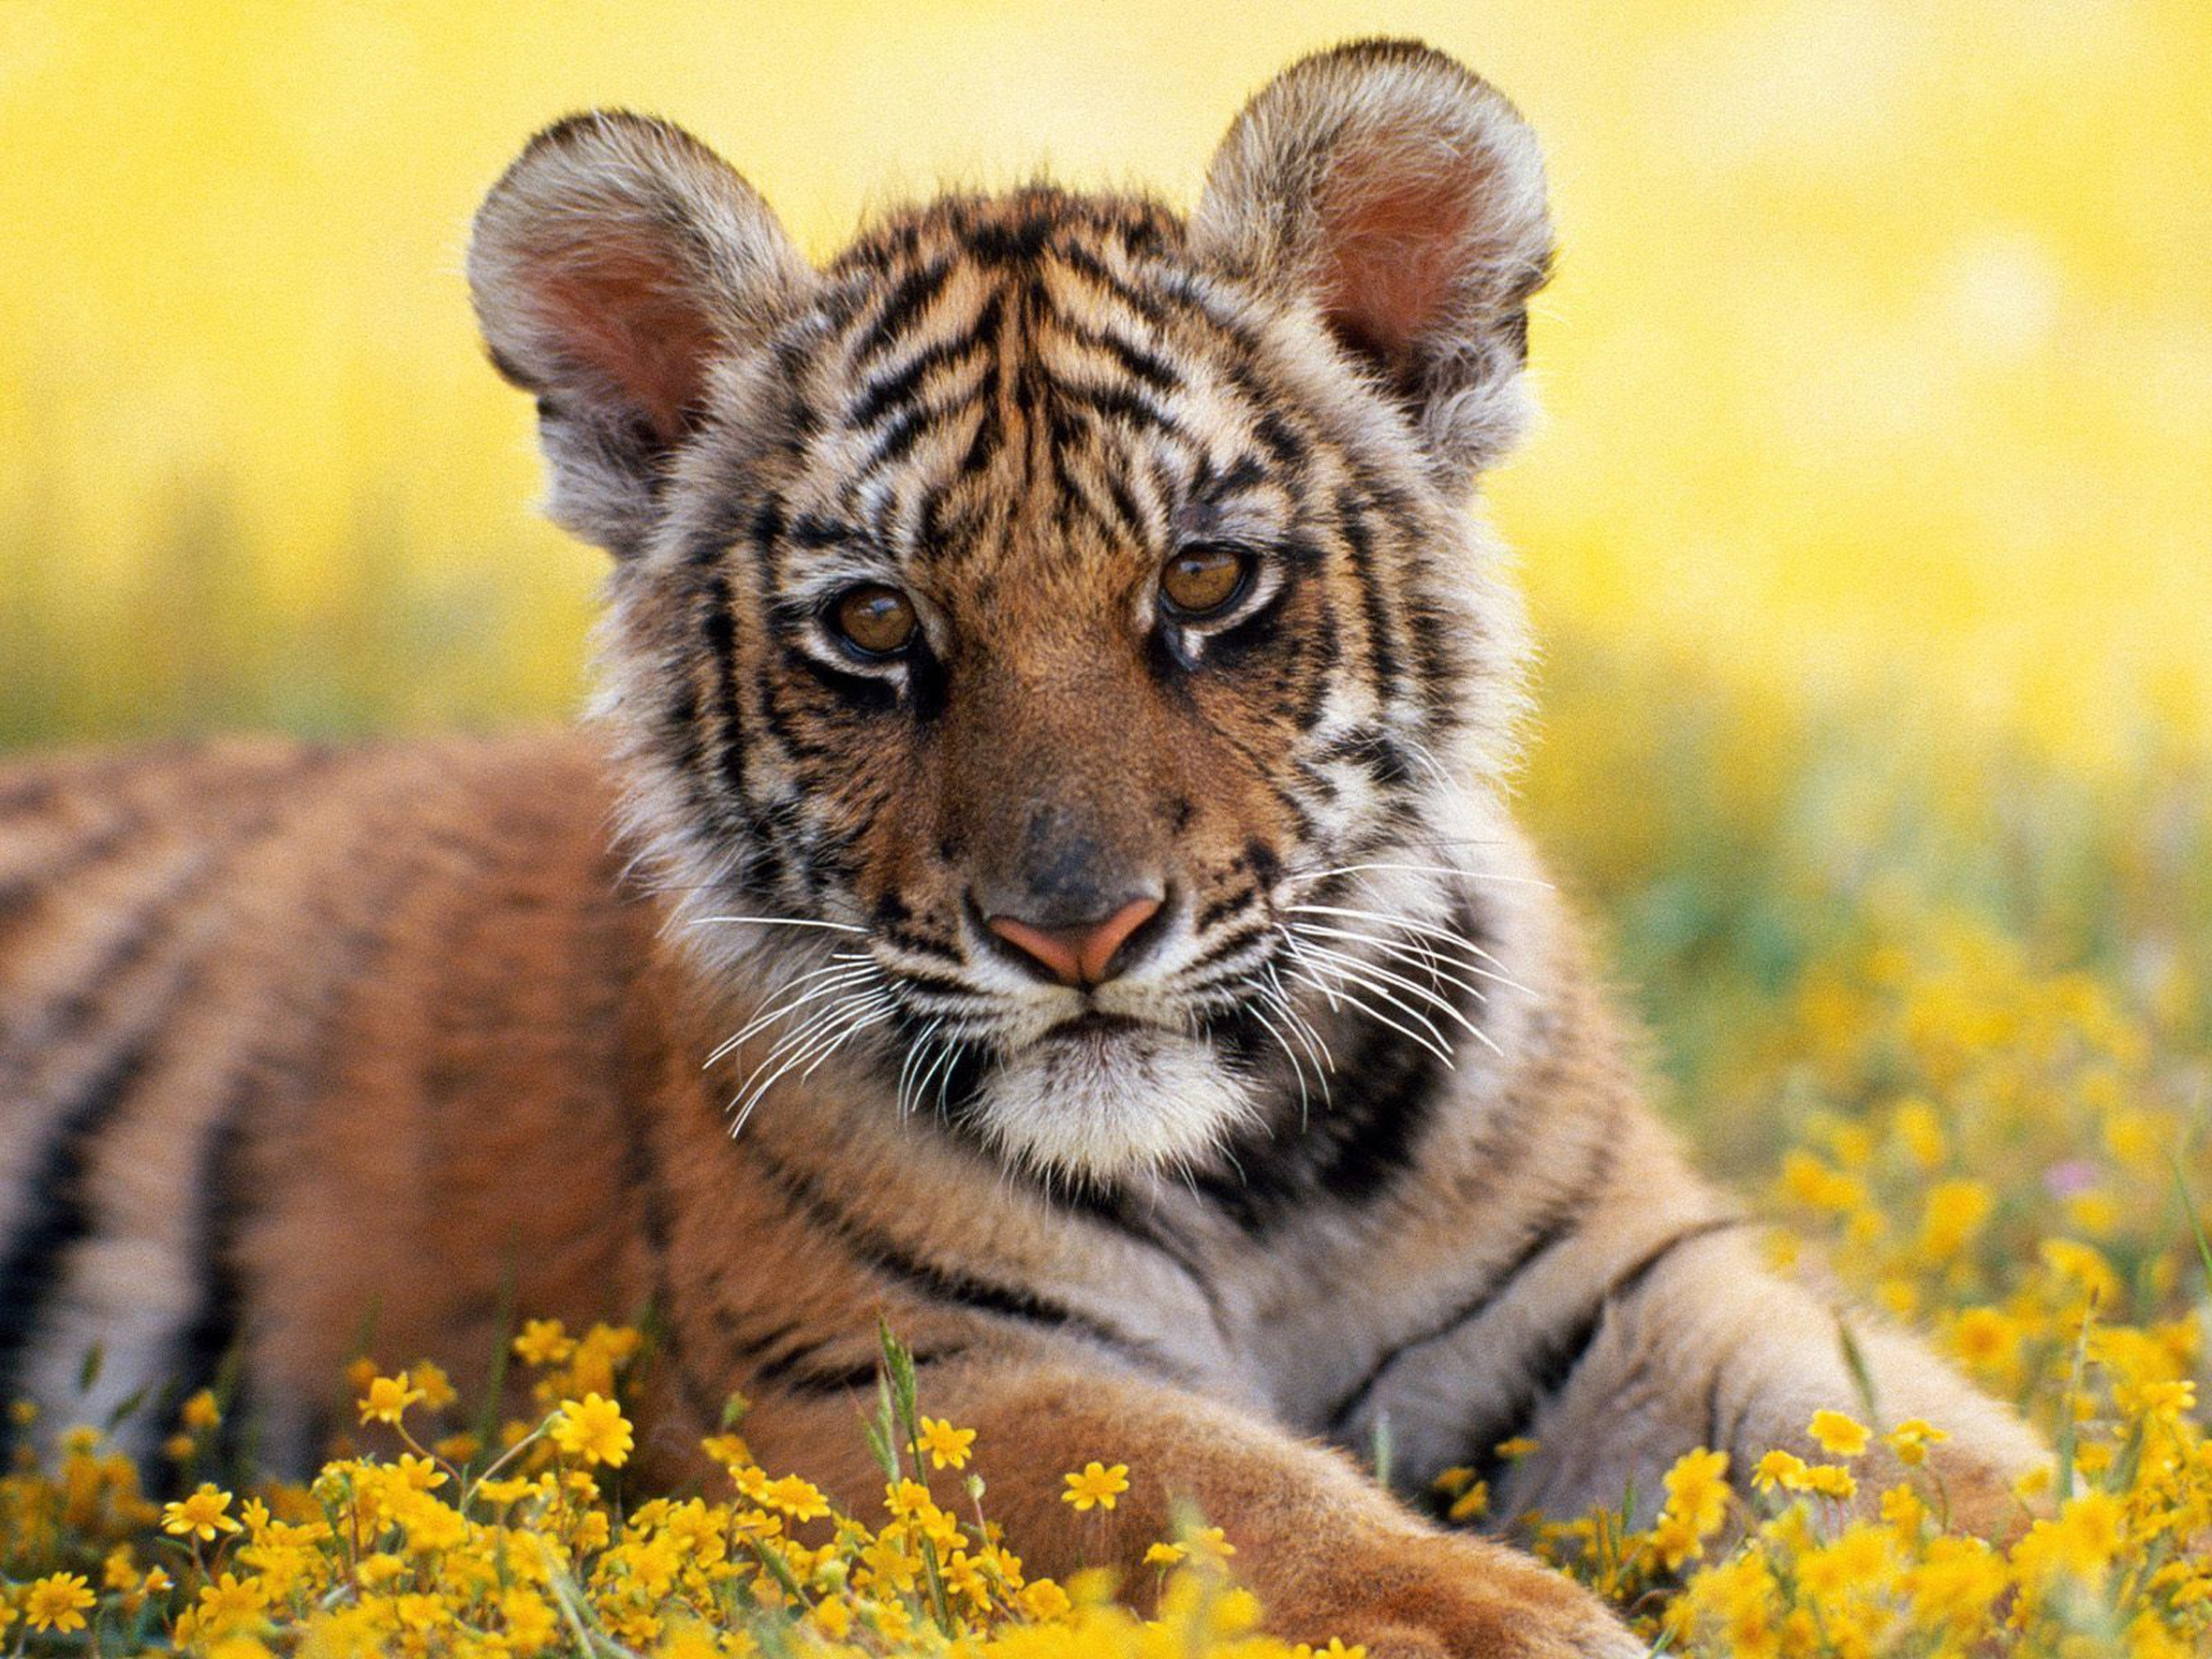 99624 download wallpaper Animals, Tiger Cub, Tiger, Grass, Young, Joey, Flowers screensavers and pictures for free